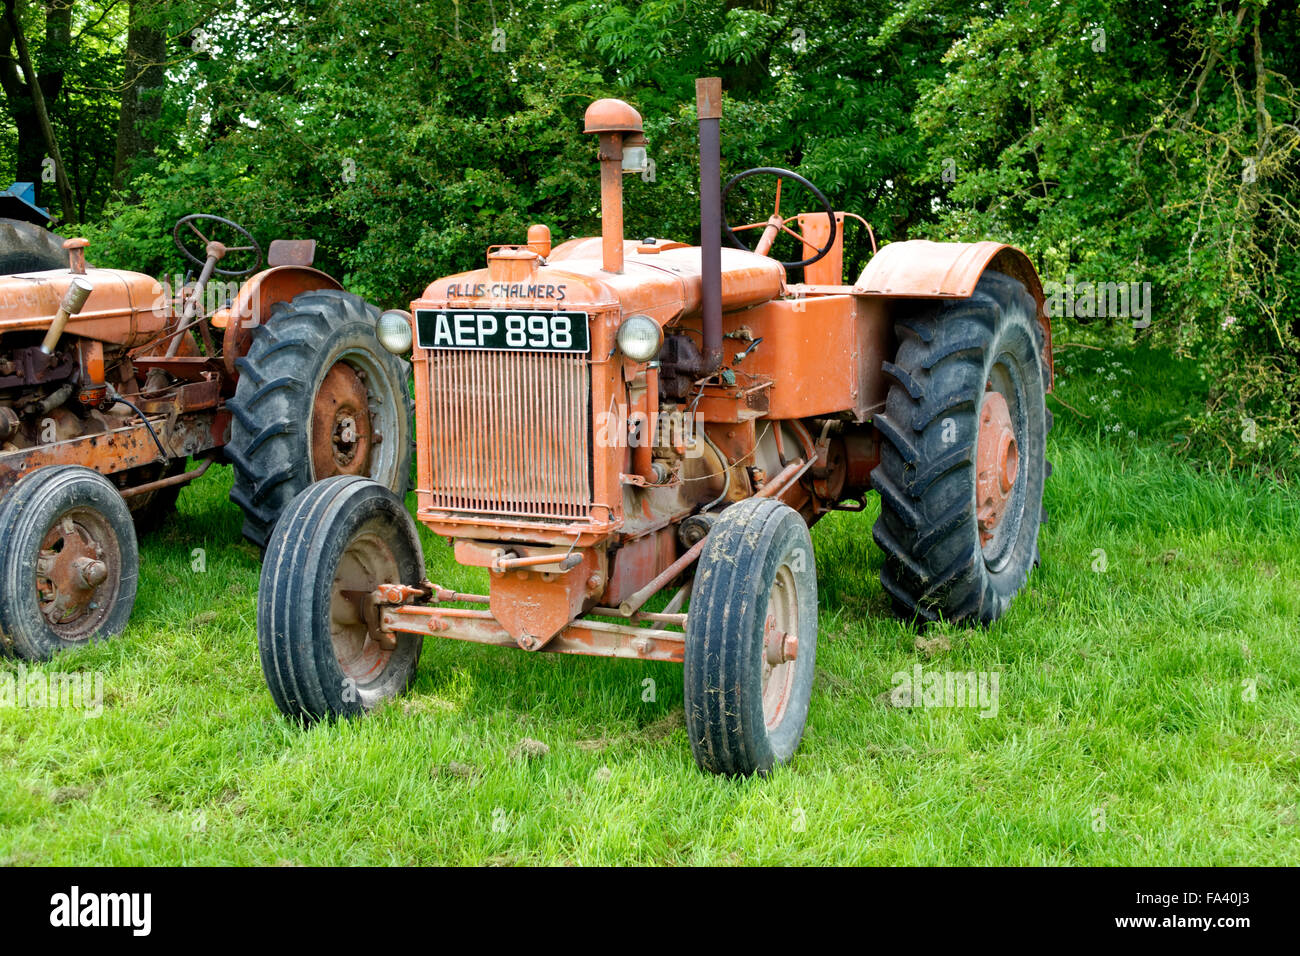 A Vintage Allis Chalmers Tractor At The Vintage Nostalgia Show Stockton Wiltshire United